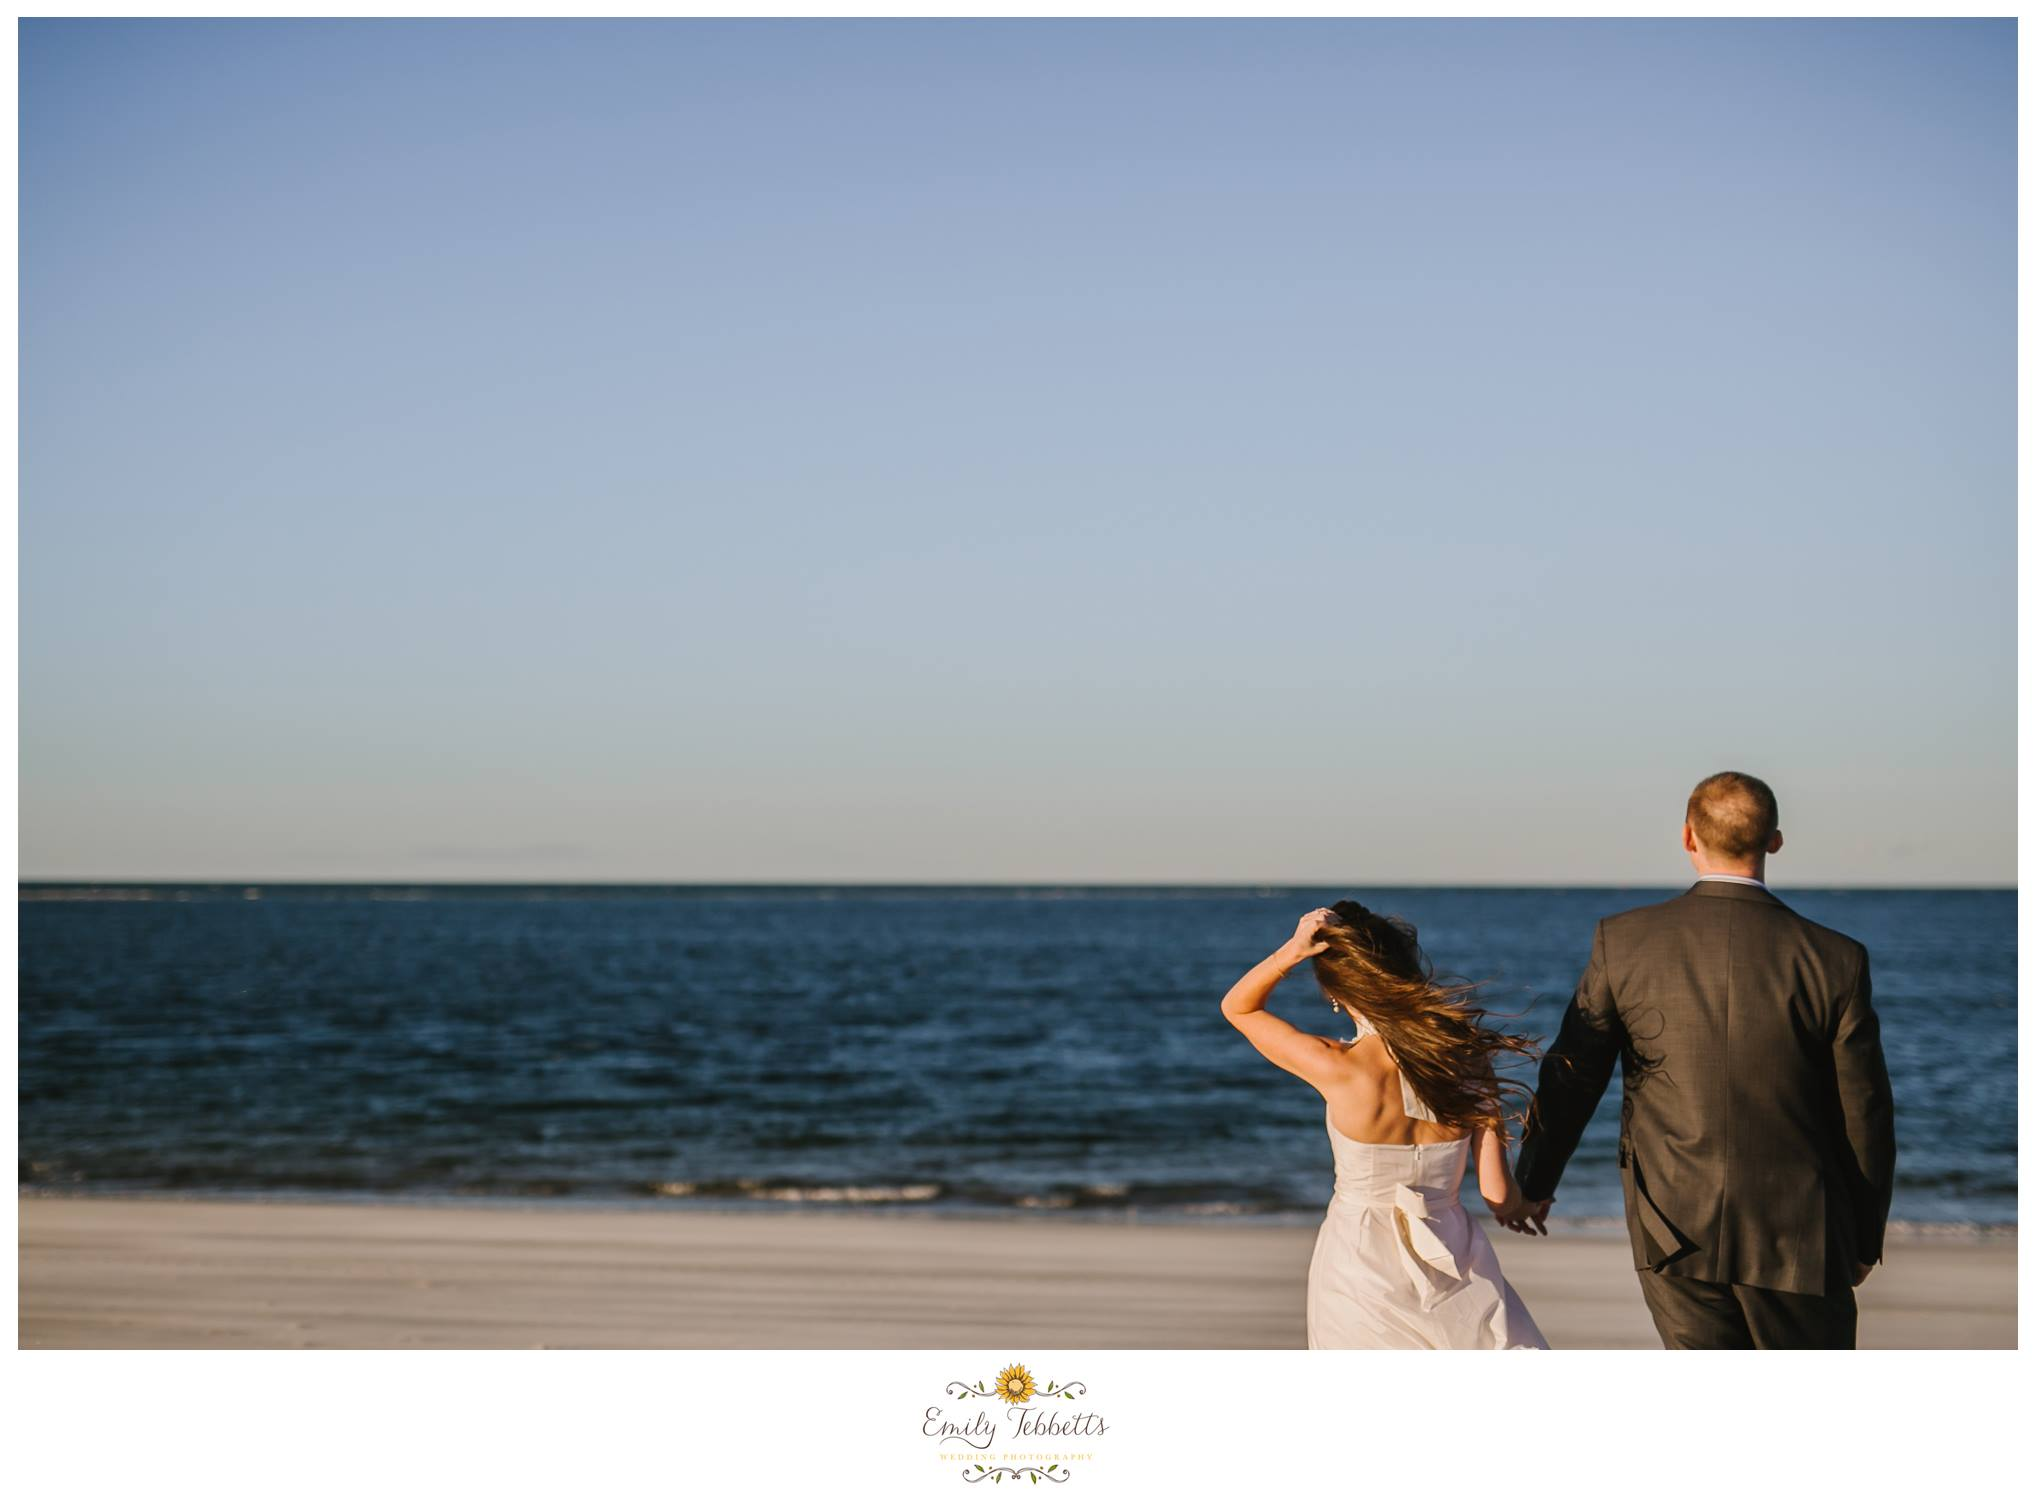 Emily Tebbetts Photography Engagement Session || Crane Beach, Ipswhich, MA 6.jpg